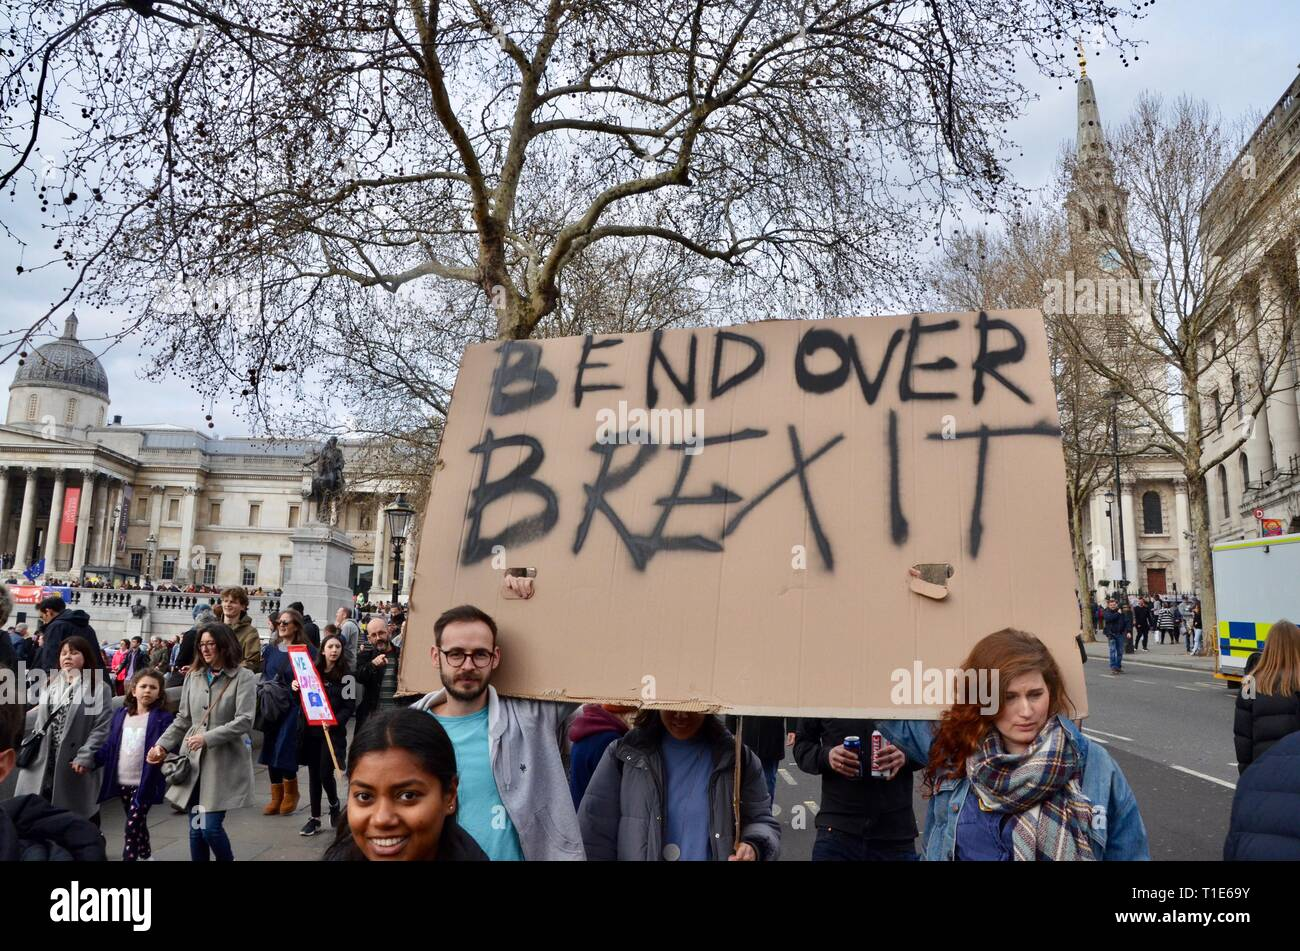 scenes from the anti brexit pro peoples vote march in london 23rd march 2019 bend over brexit placard - Stock Image